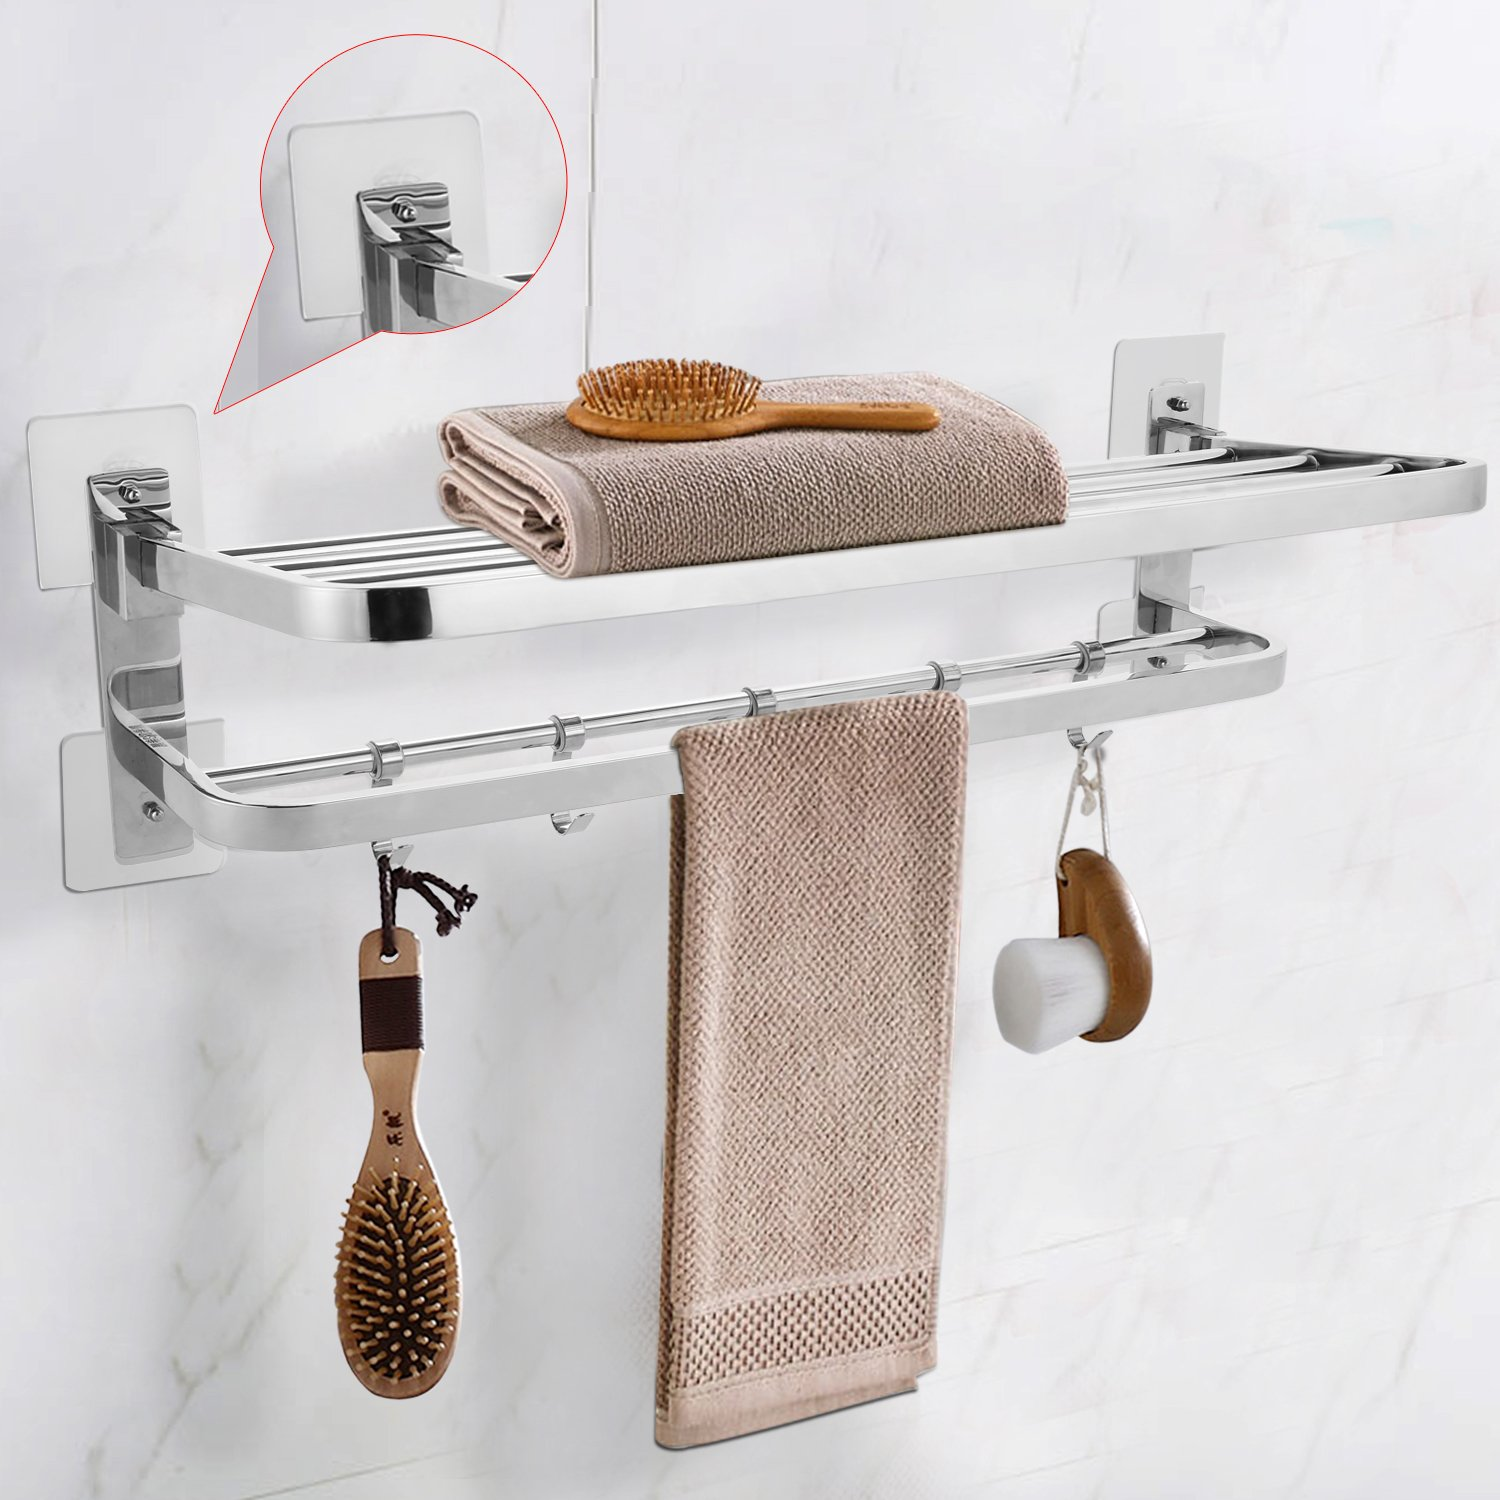 BATHWA Self Adhesive Towel Rack Bathroom Shelf Foldable Double Towel Bar Holder with 5 Movable Hooks Wall Mounted Stainless Steel 23.2L x 9.4W x 5.1H inches